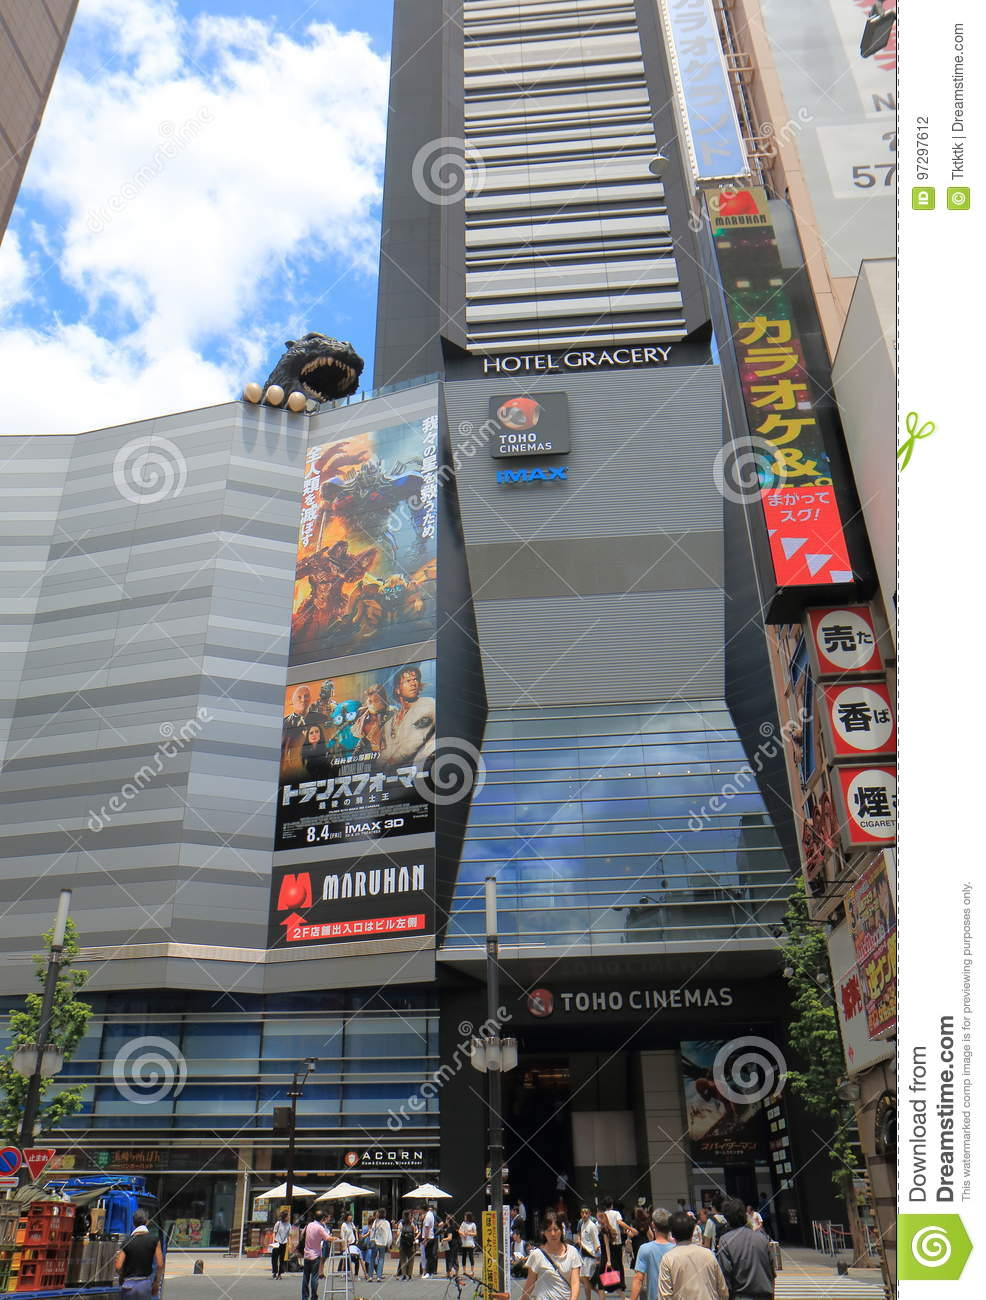 Movie Theatre Cinema Shinjuku Tokyo Japan Editorial Photography Image Of Statue Street 97297612